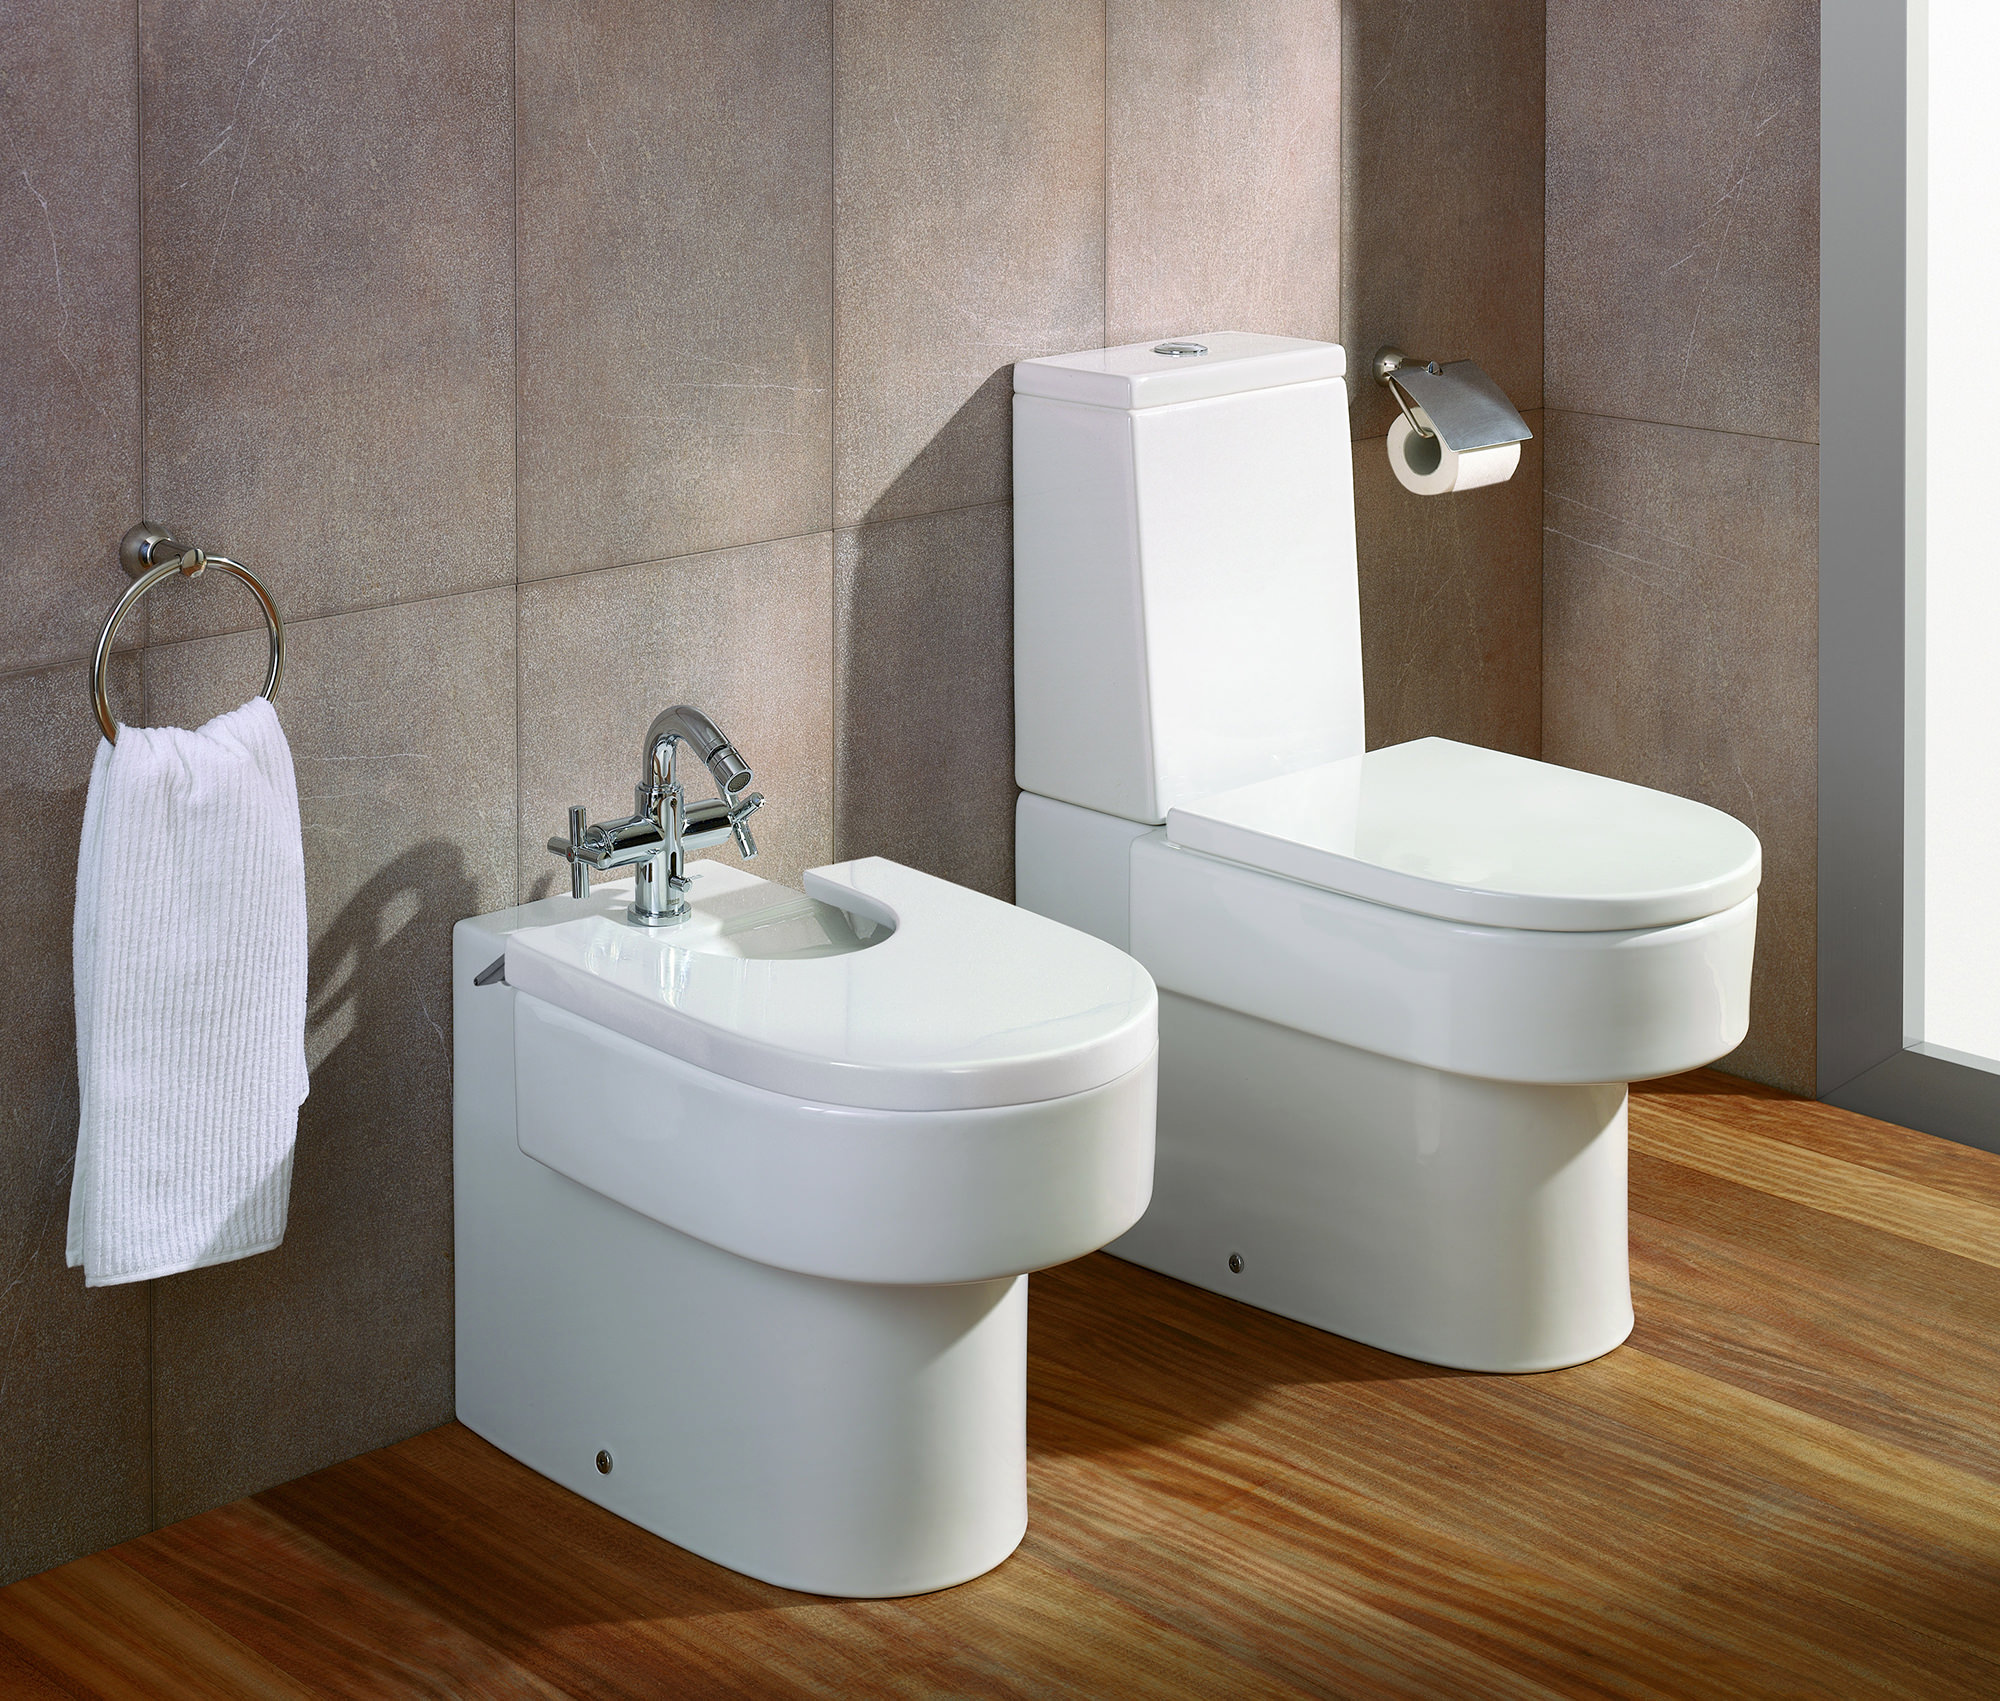 Roca Happening Wc Pan With Cistern And Soft Close Seat